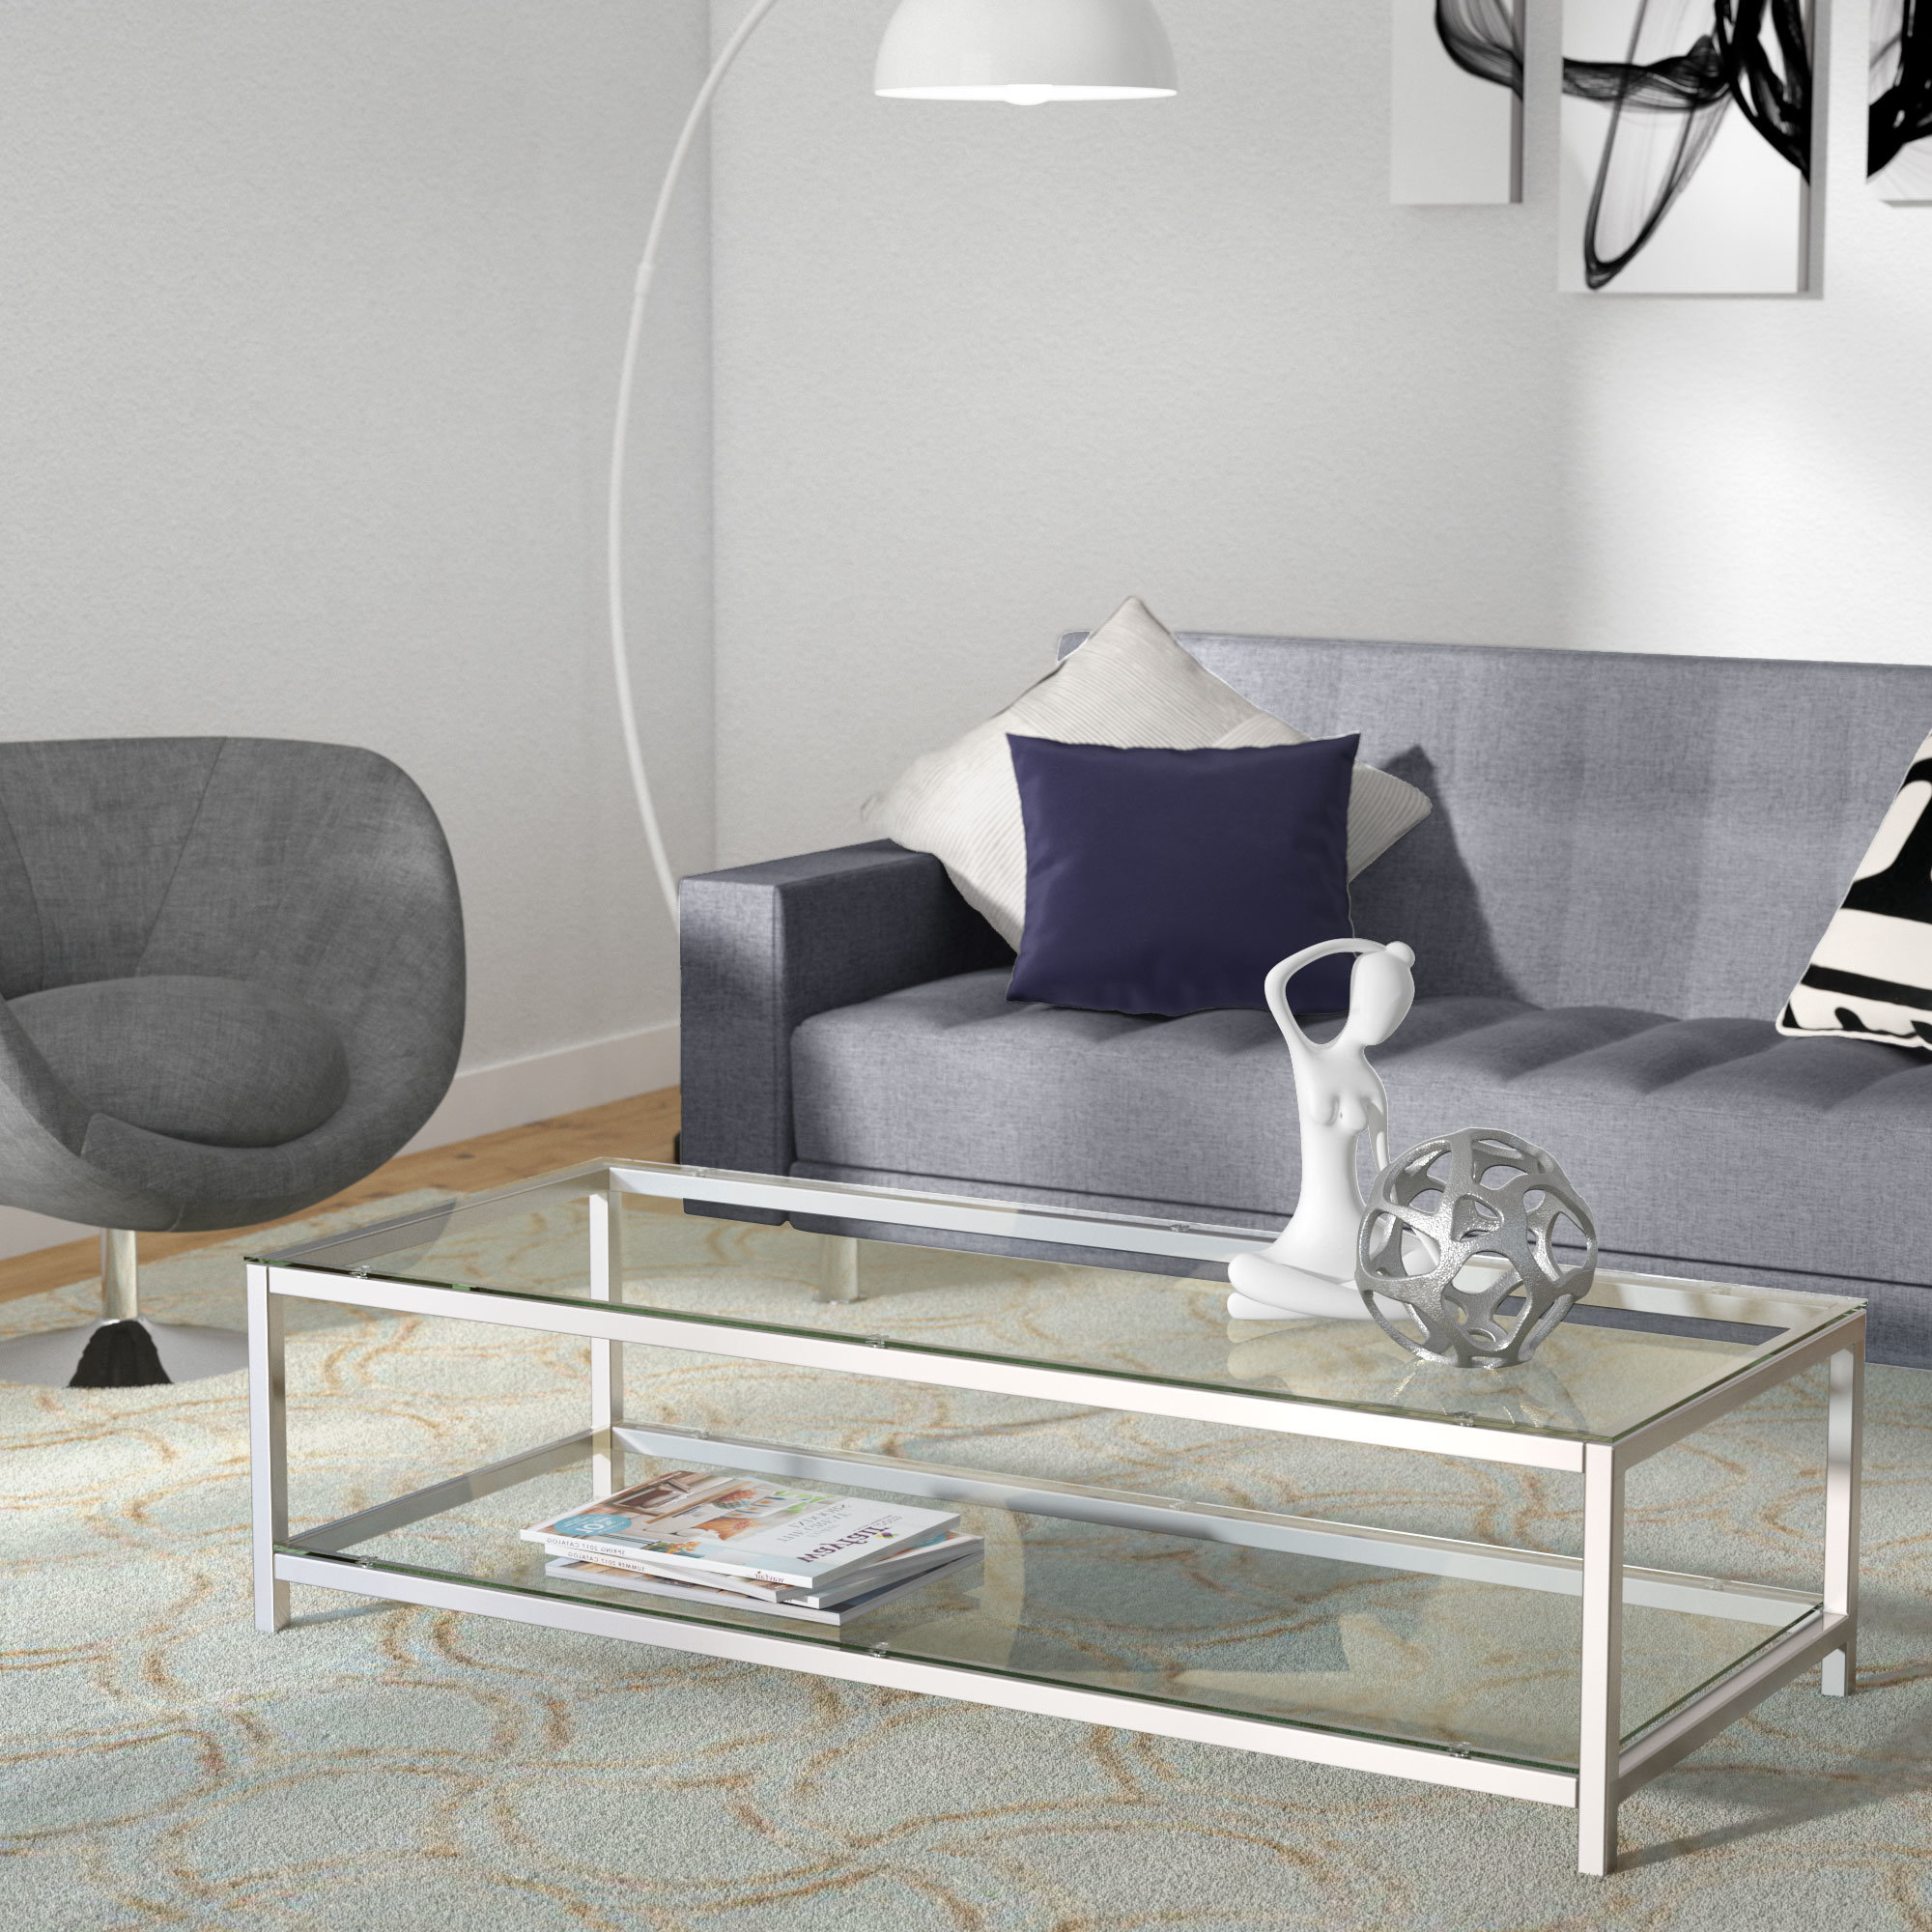 Wayfair For Most Up To Date Jessa Rustic Country 54 Inch Coffee Tables (View 19 of 20)